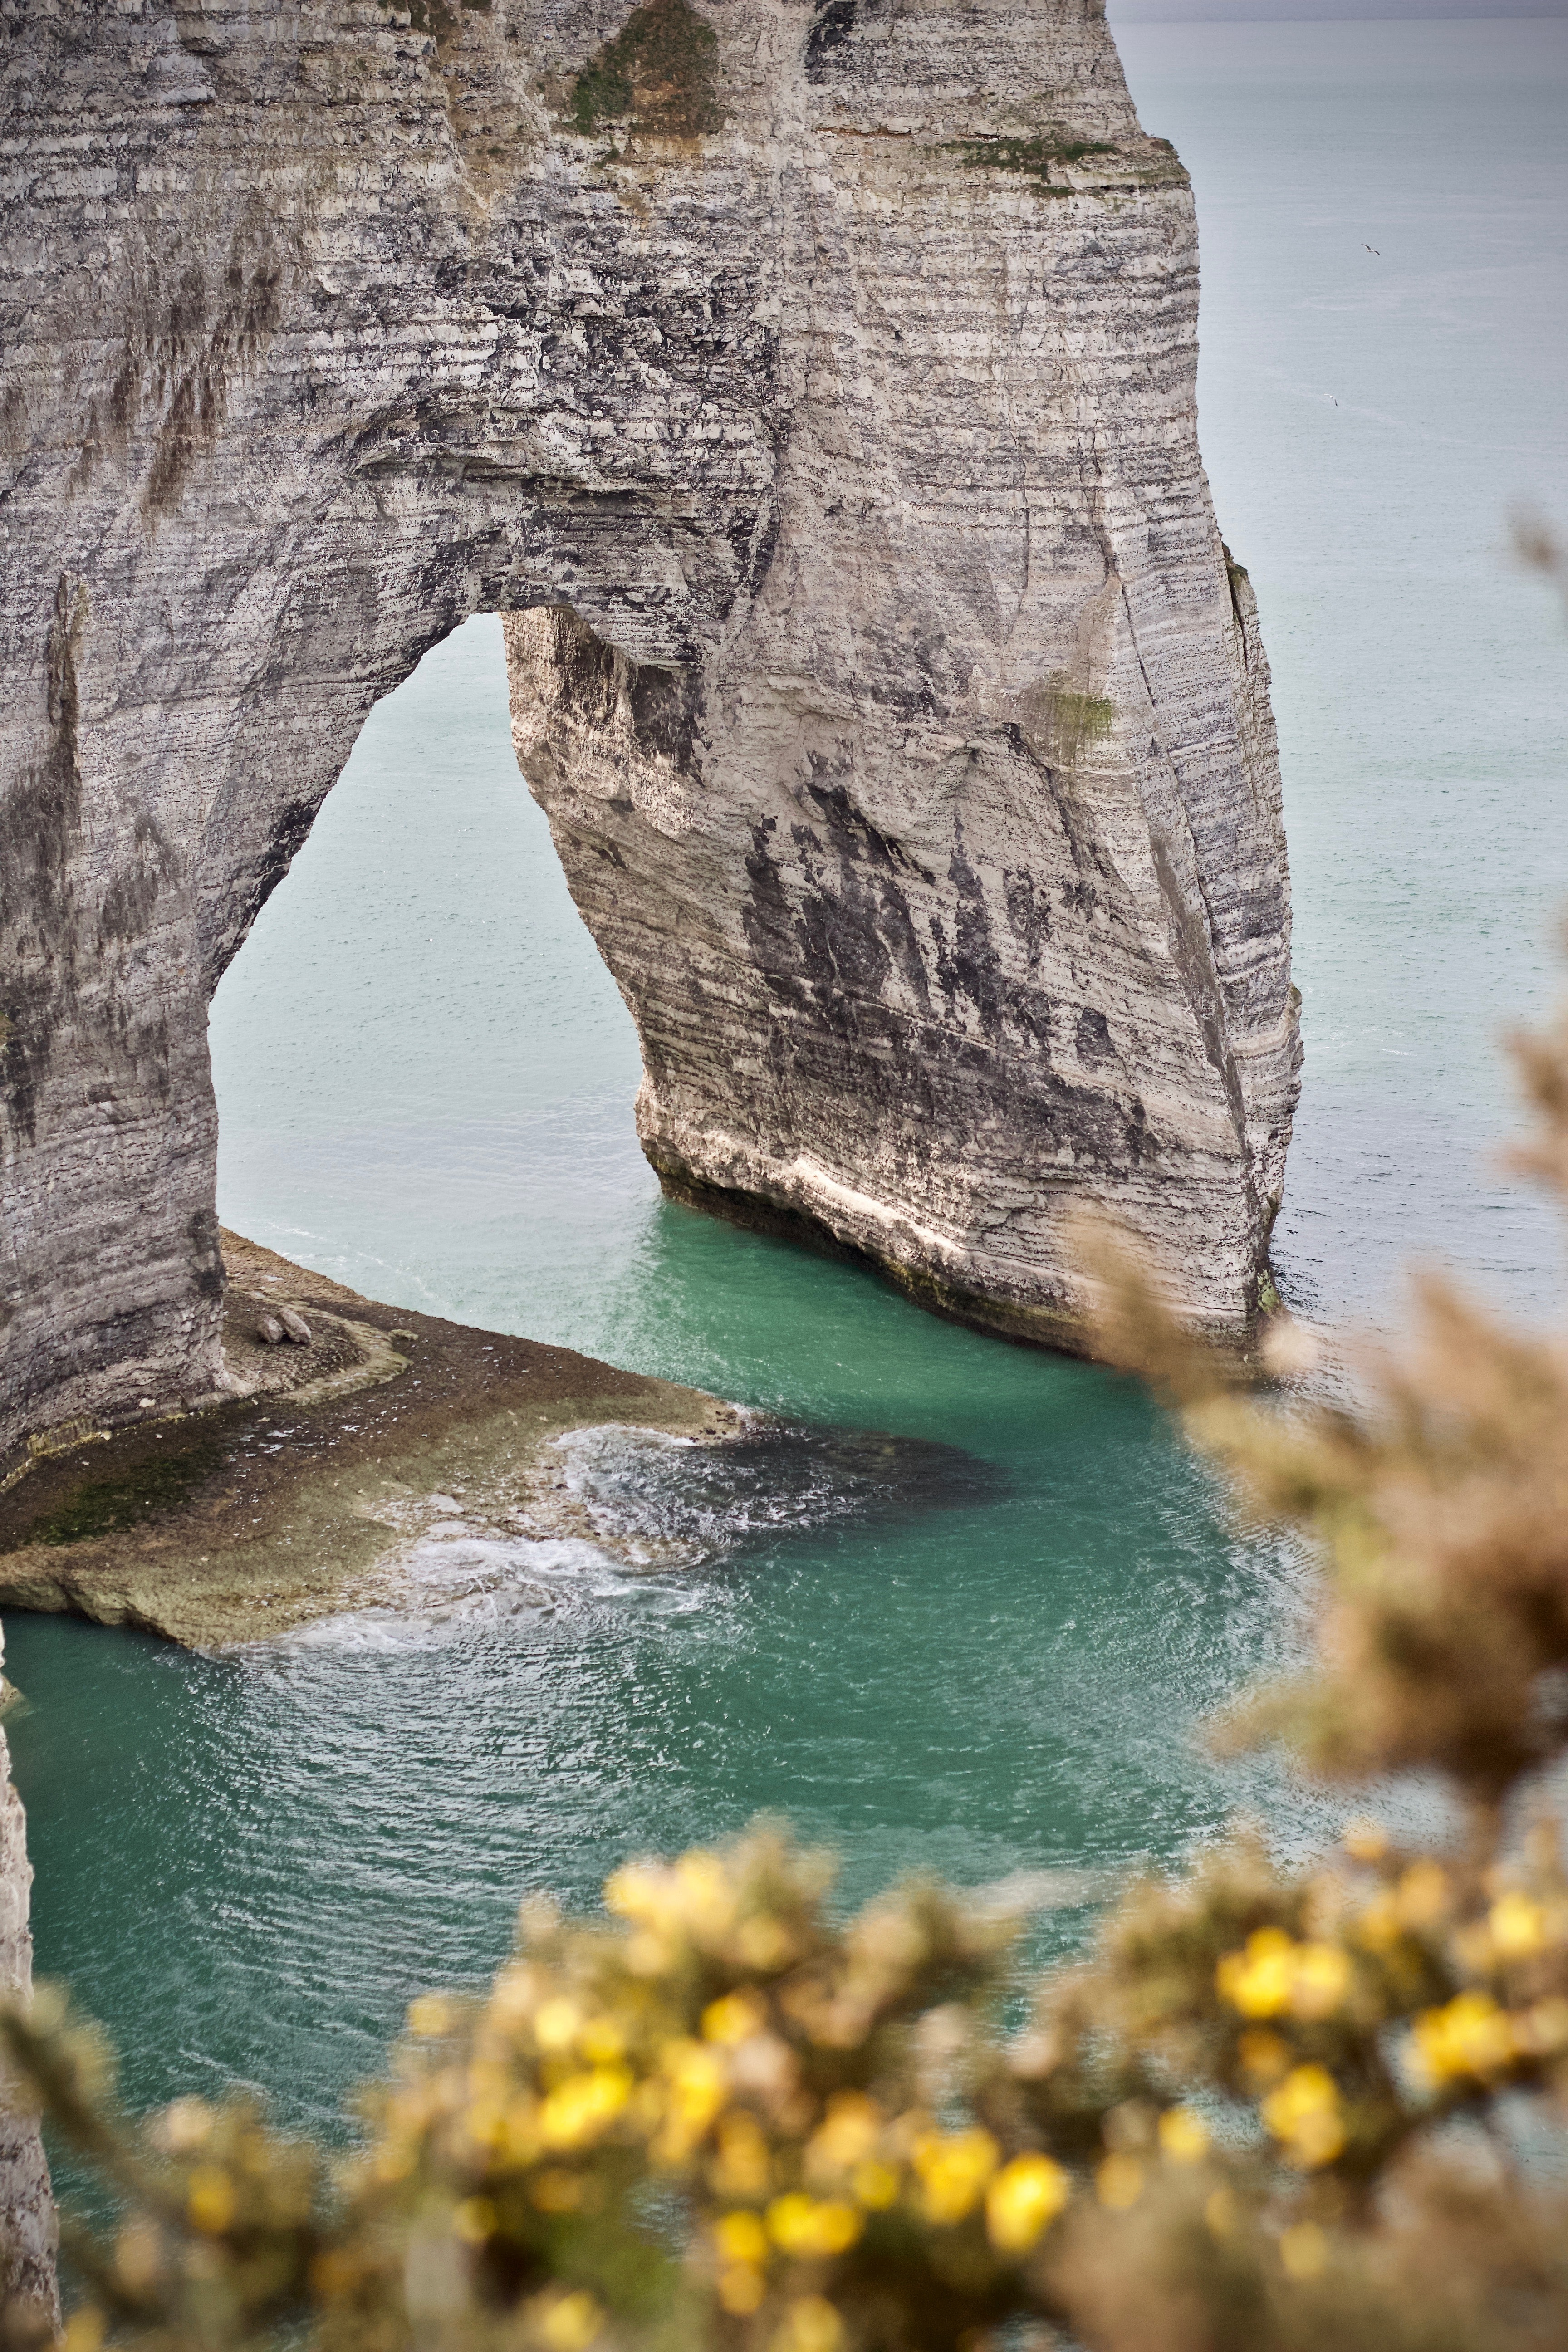 rock monolith on body of water